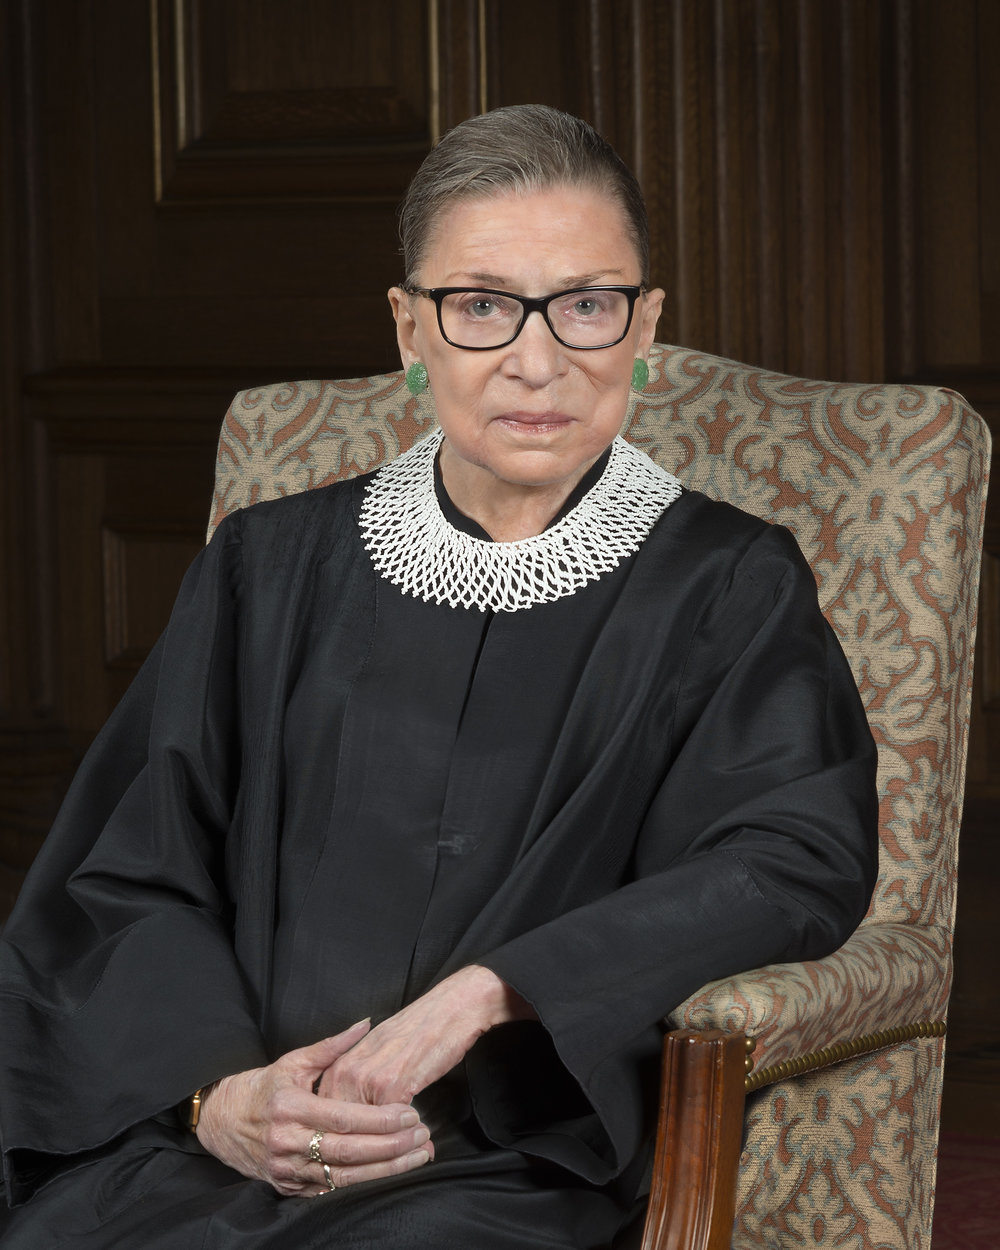 Image of U.S. Supreme Court Justice Ruth Bader Ginsburg, a truly great American, from  https://en.wikipedia.org/wiki/Ruth_Bader_Ginsburg  .